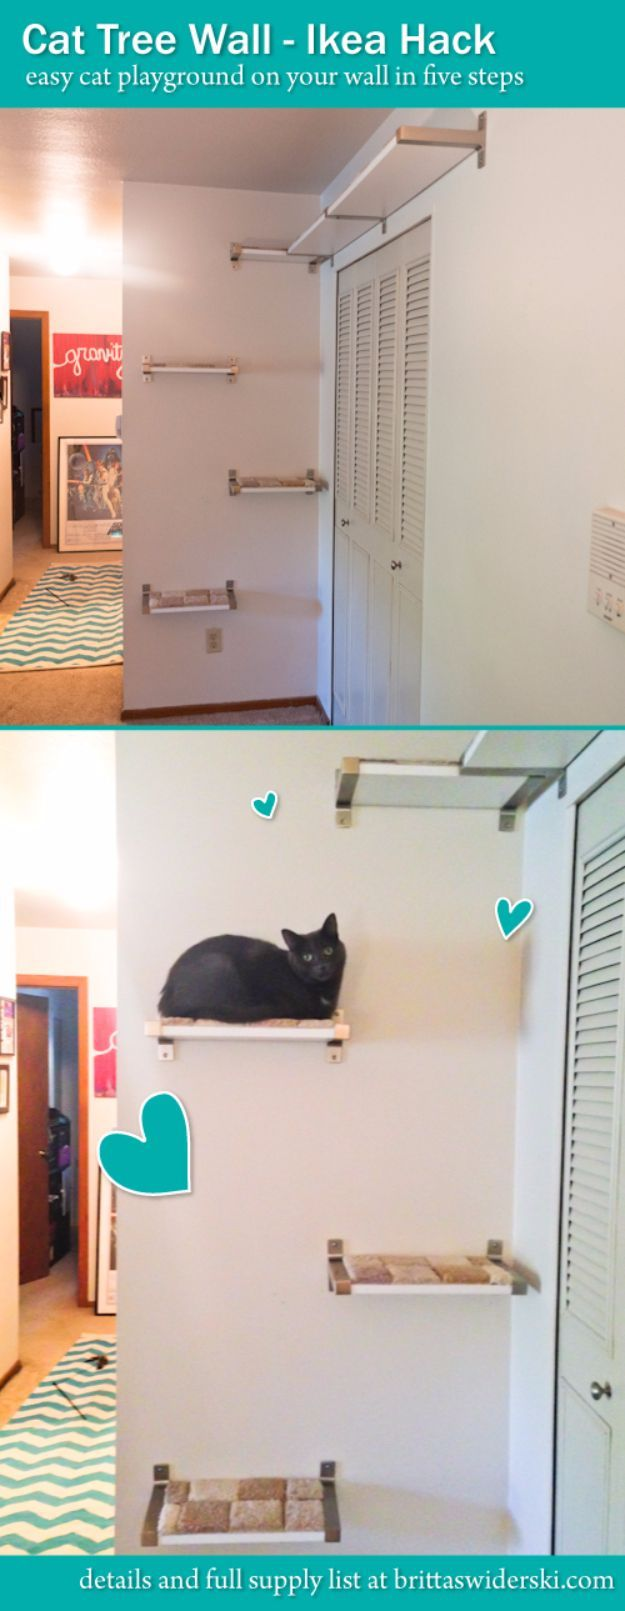 DIY Cat Hacks - Cat Tree Wall Ikea Hack - Tips and Tricks - 5 Easy Steps - Cat Wall Shelves